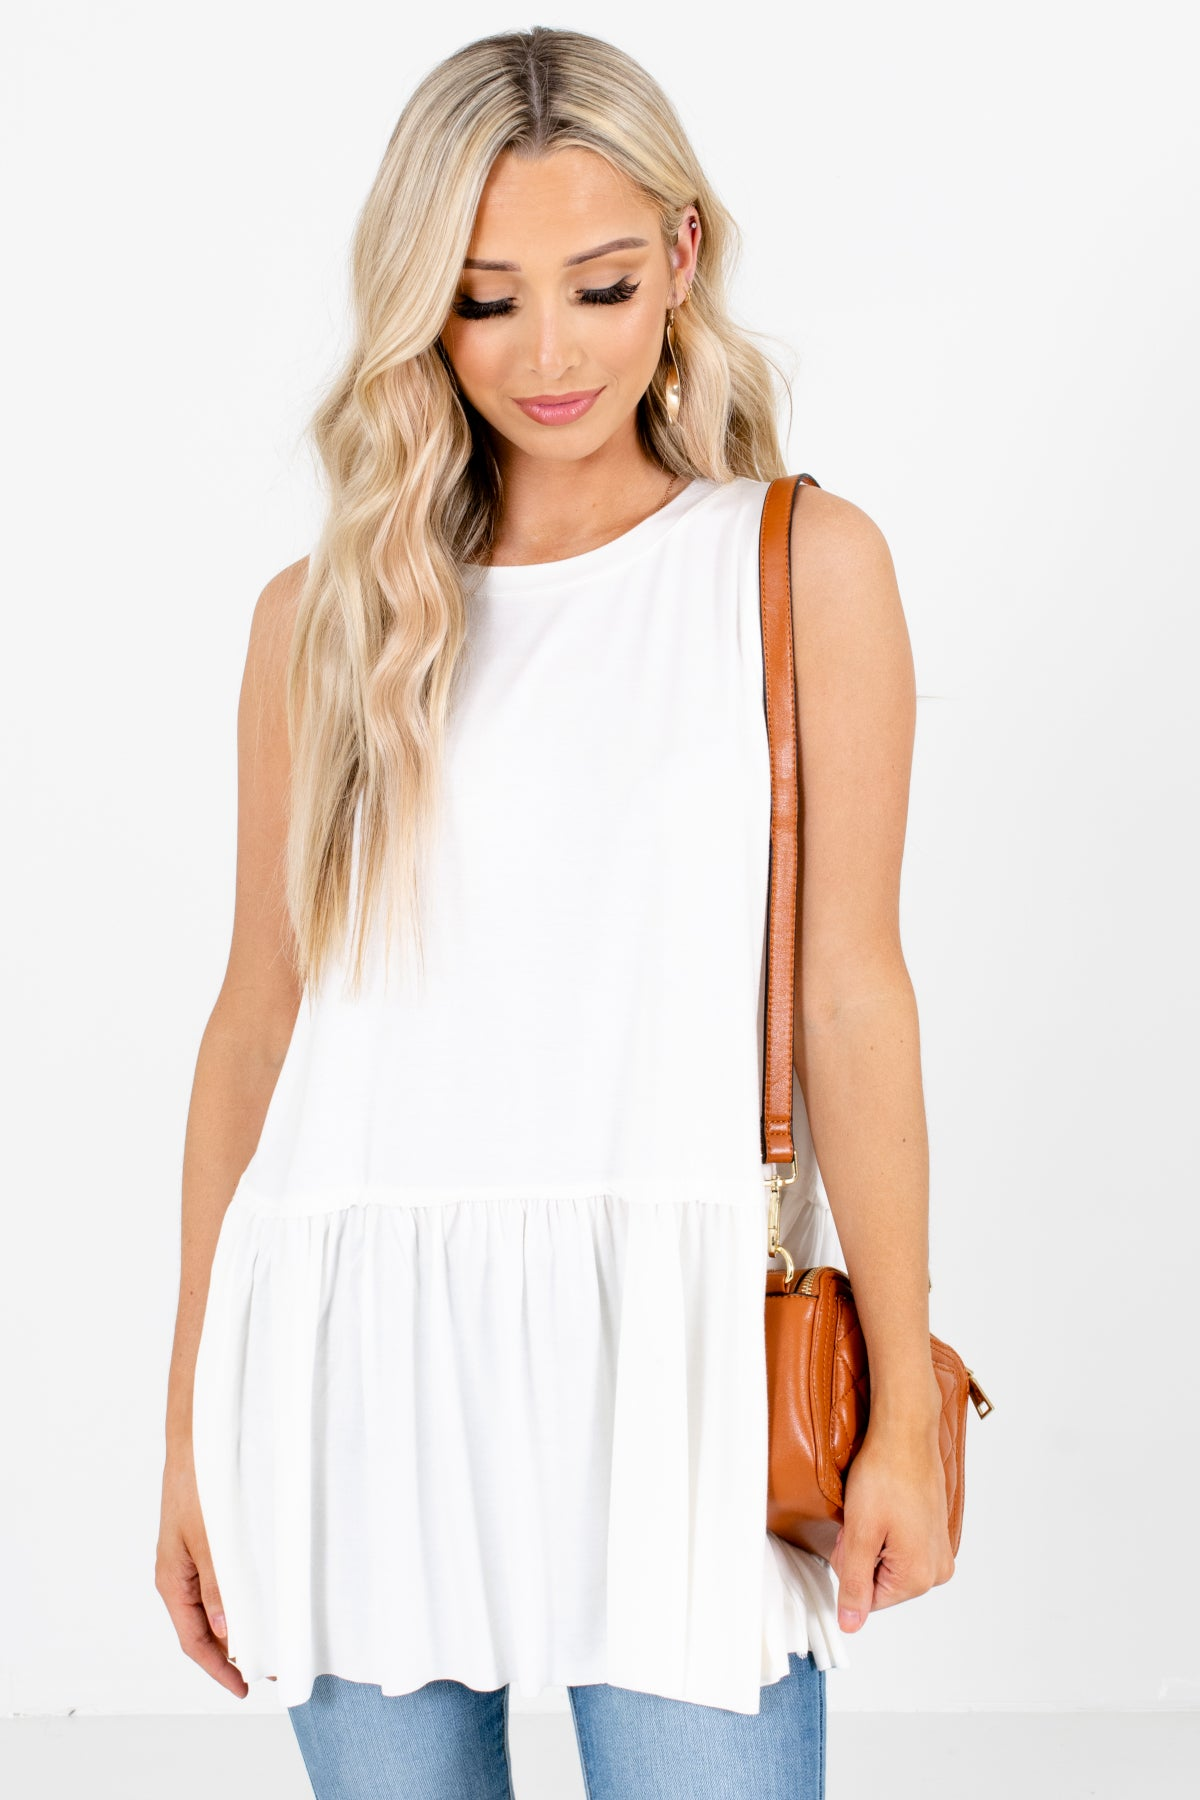 White Peplum Style Boutique Tank Tops for Women